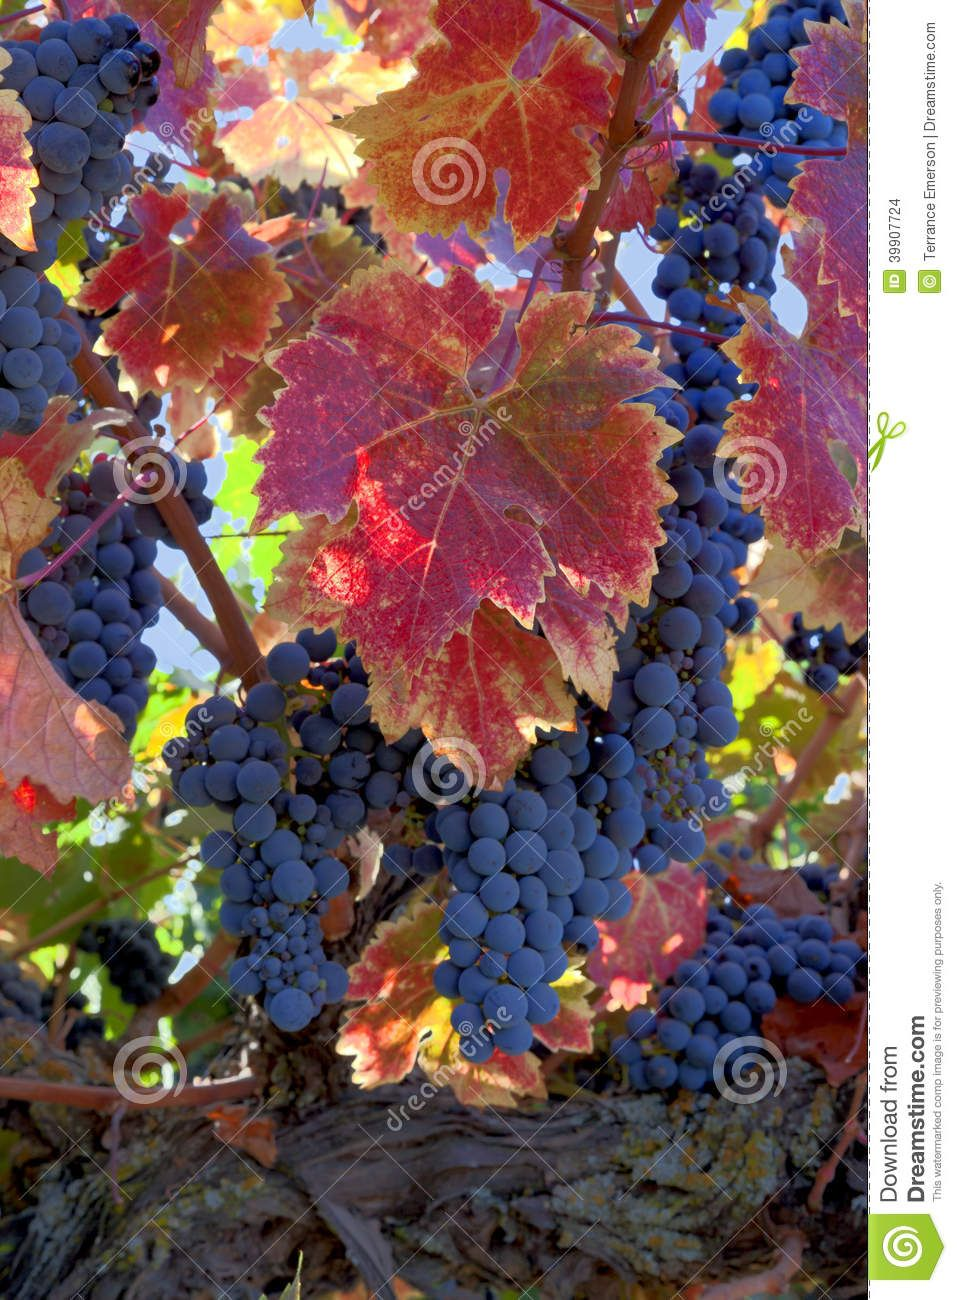 Photo About Red Varietal Wine Grapes On Vine Ripe For Harvest Colorful Red Autumn Leaves Image Of California Vineyard Colorful Grapes Varietal Grape Vines